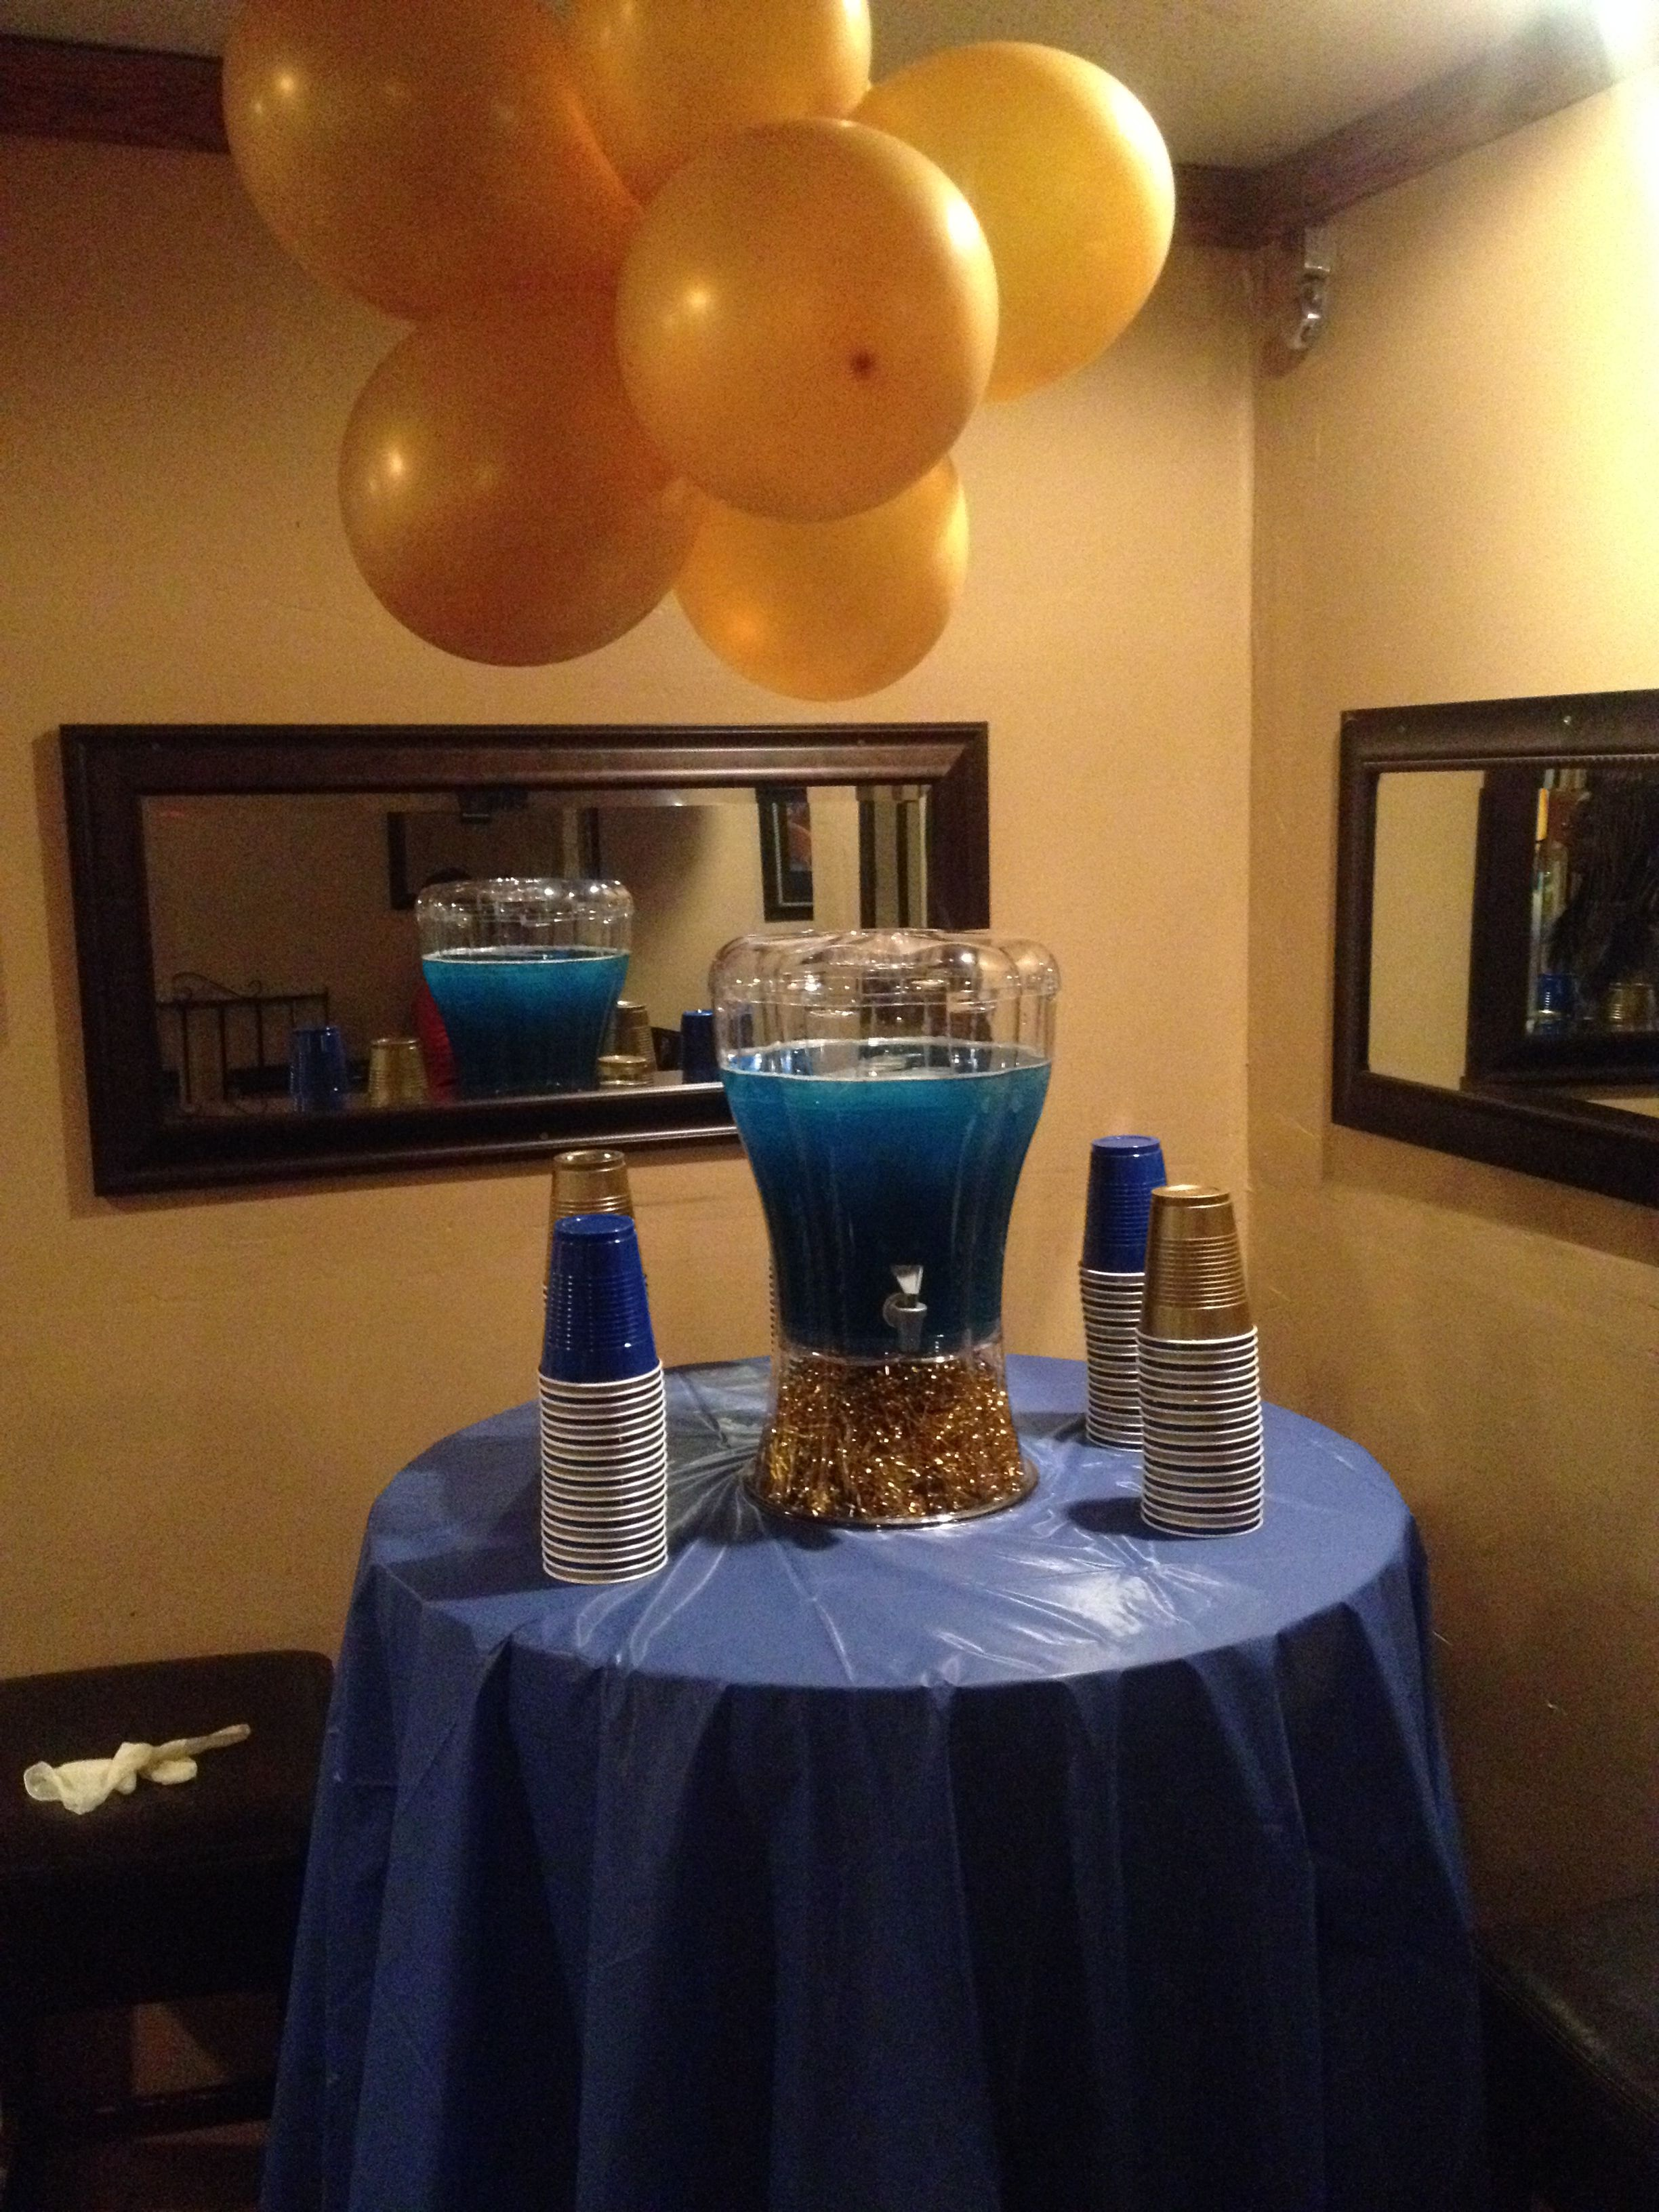 Creative Creations By Adrienne, The Royal Drink Station